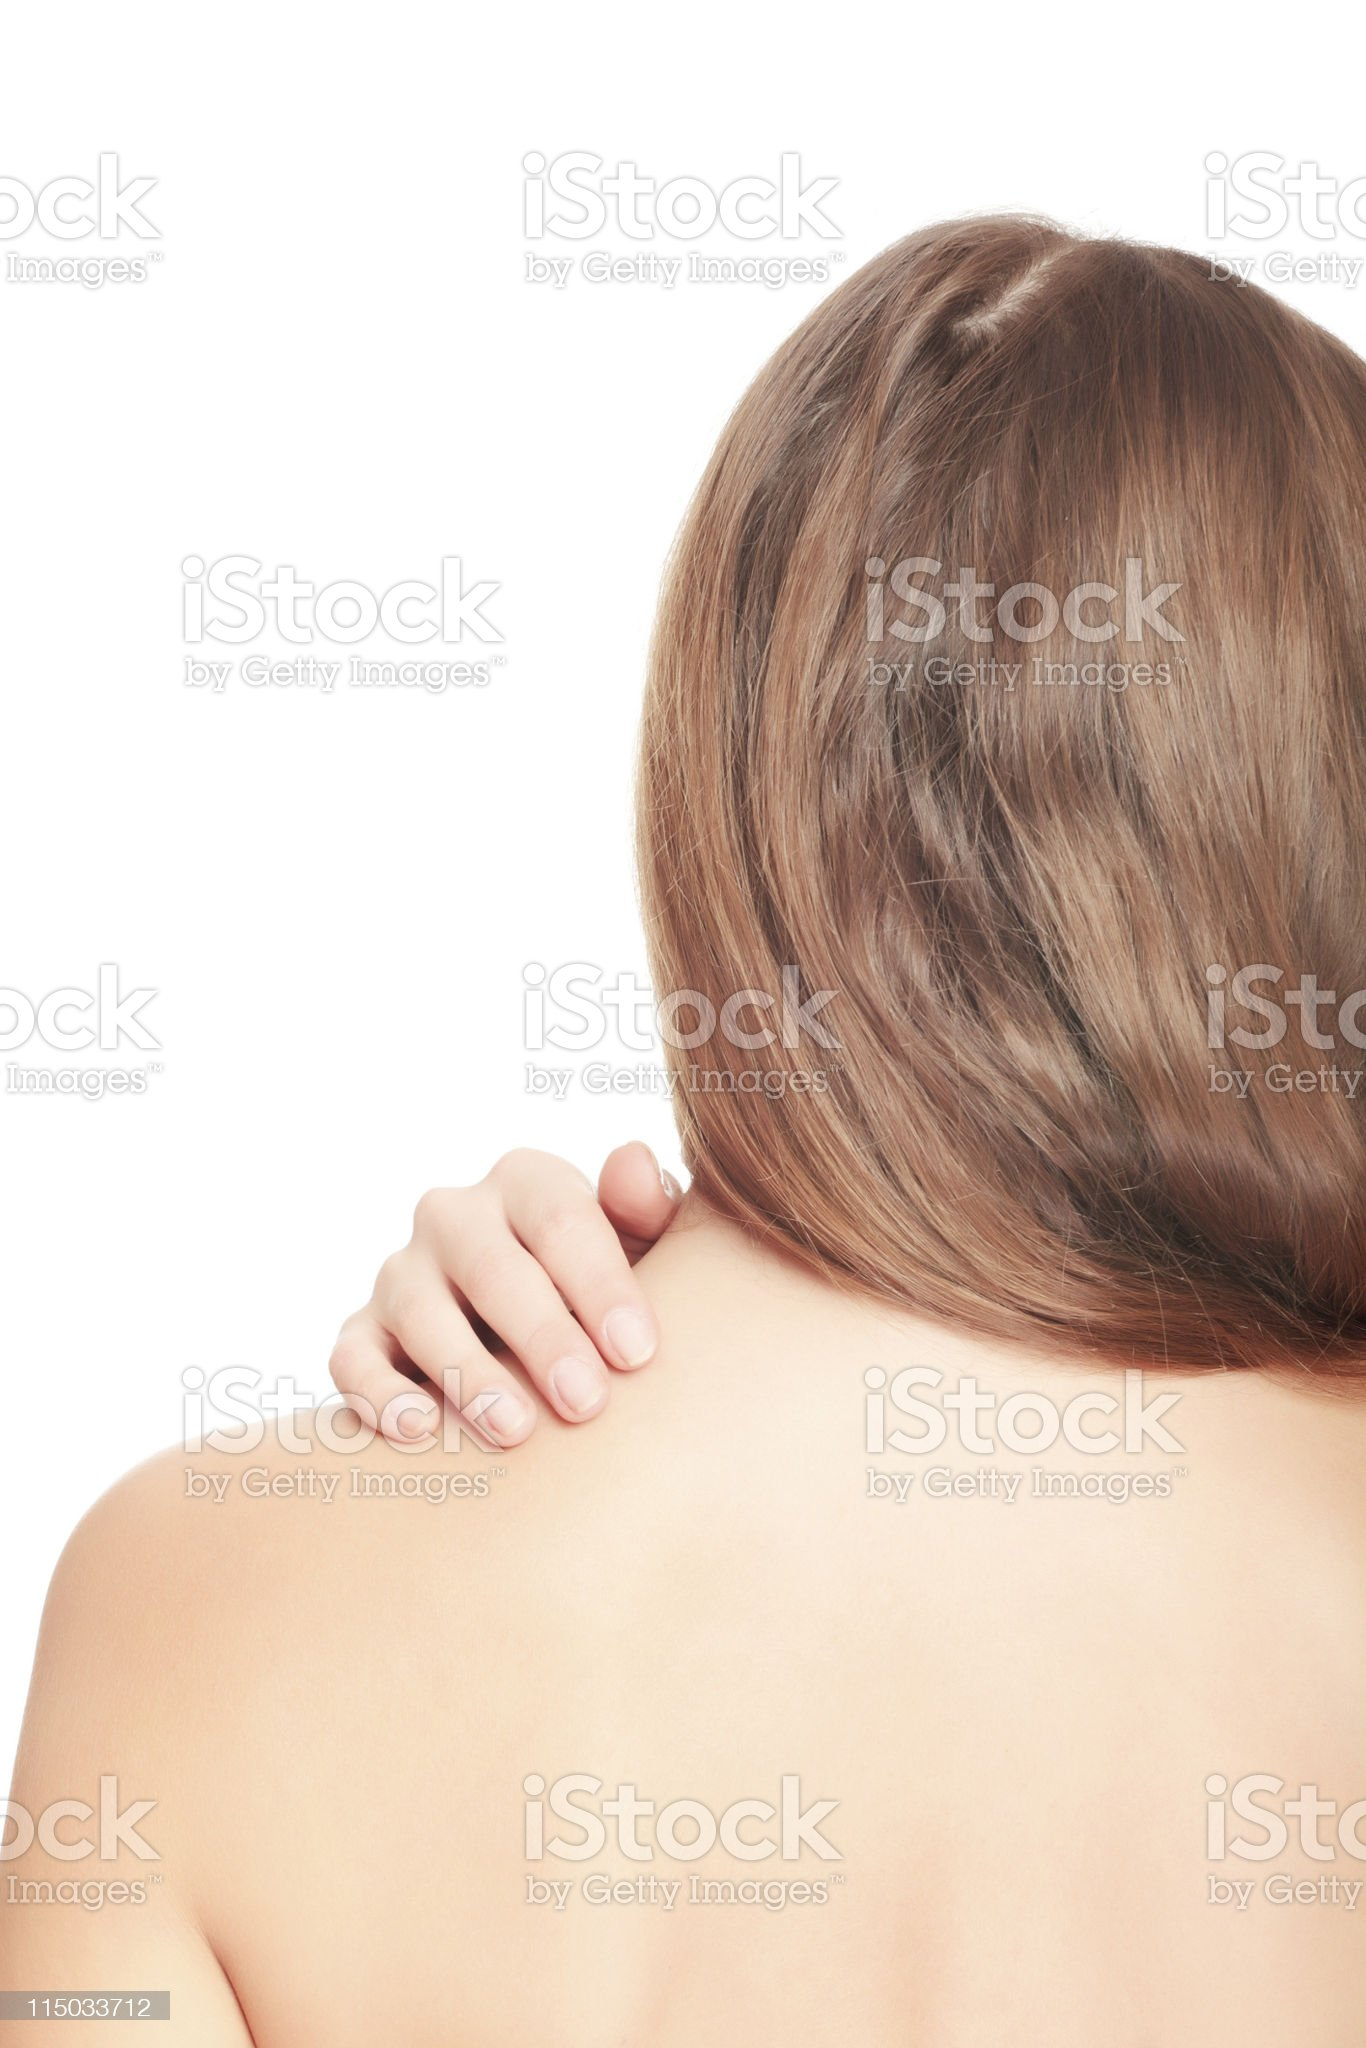 Pain in back royalty-free stock photo